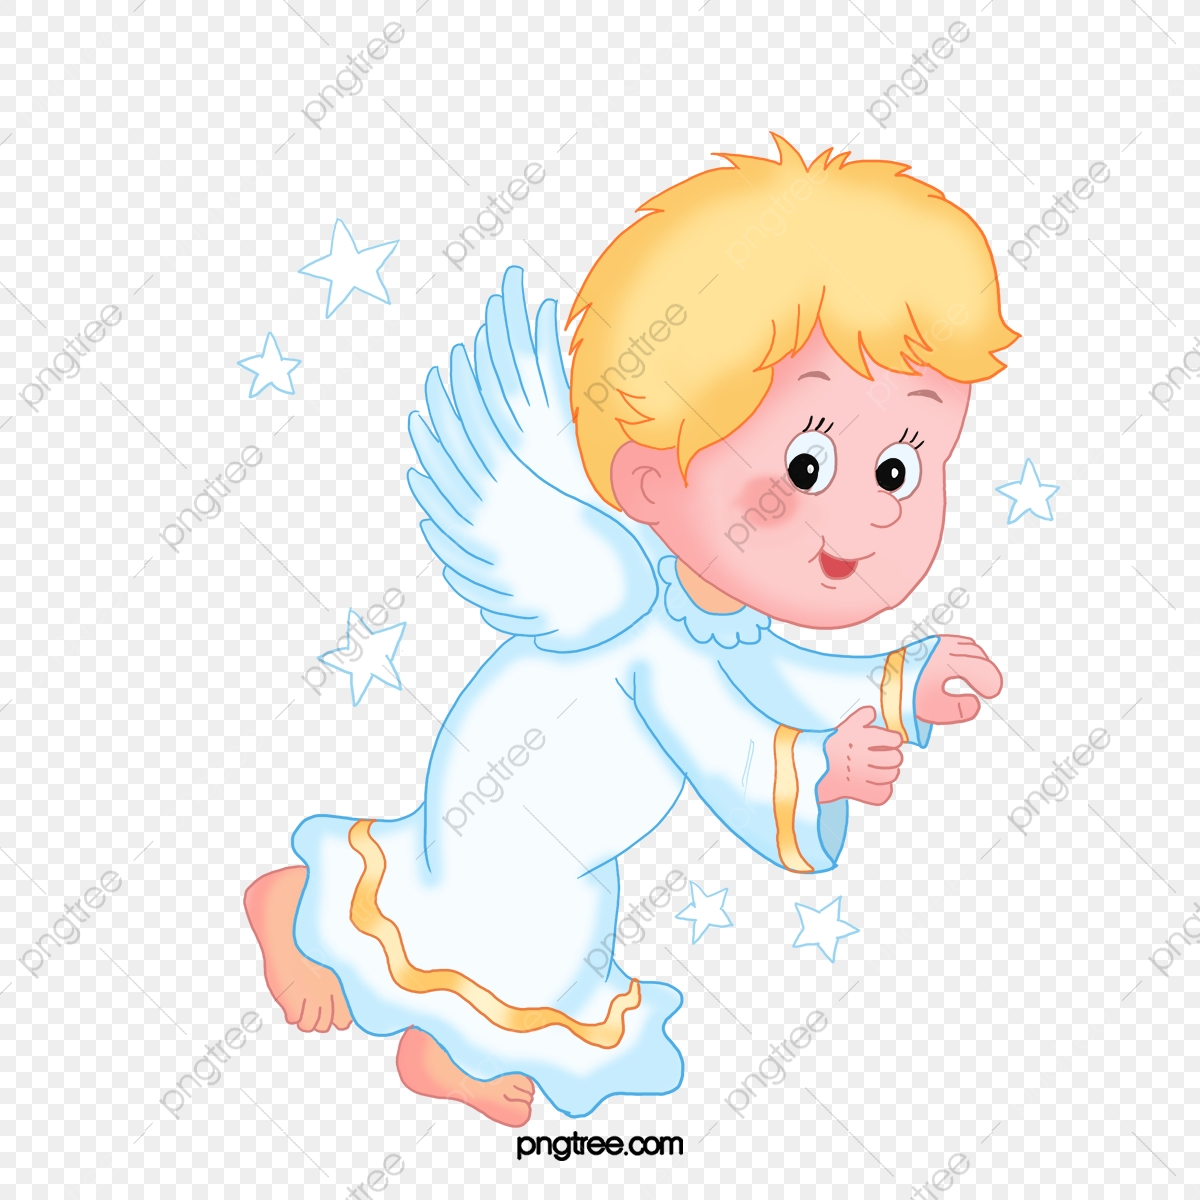 Angel Baby, Angel Clipart, Baby Clipart, Child PNG Transparent.